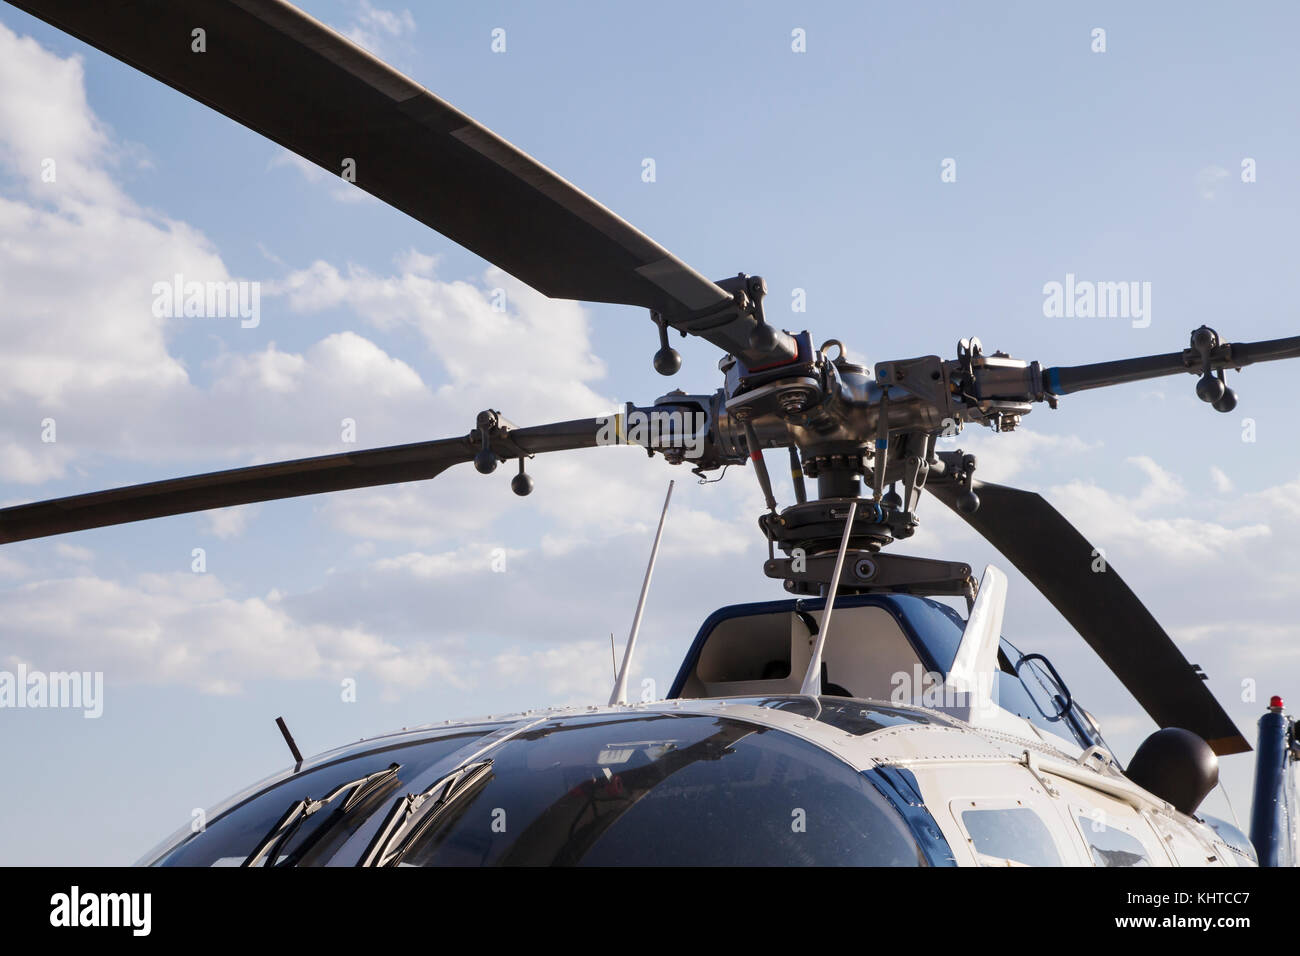 blades of a helicopter standing on land on a helipad - Stock Image